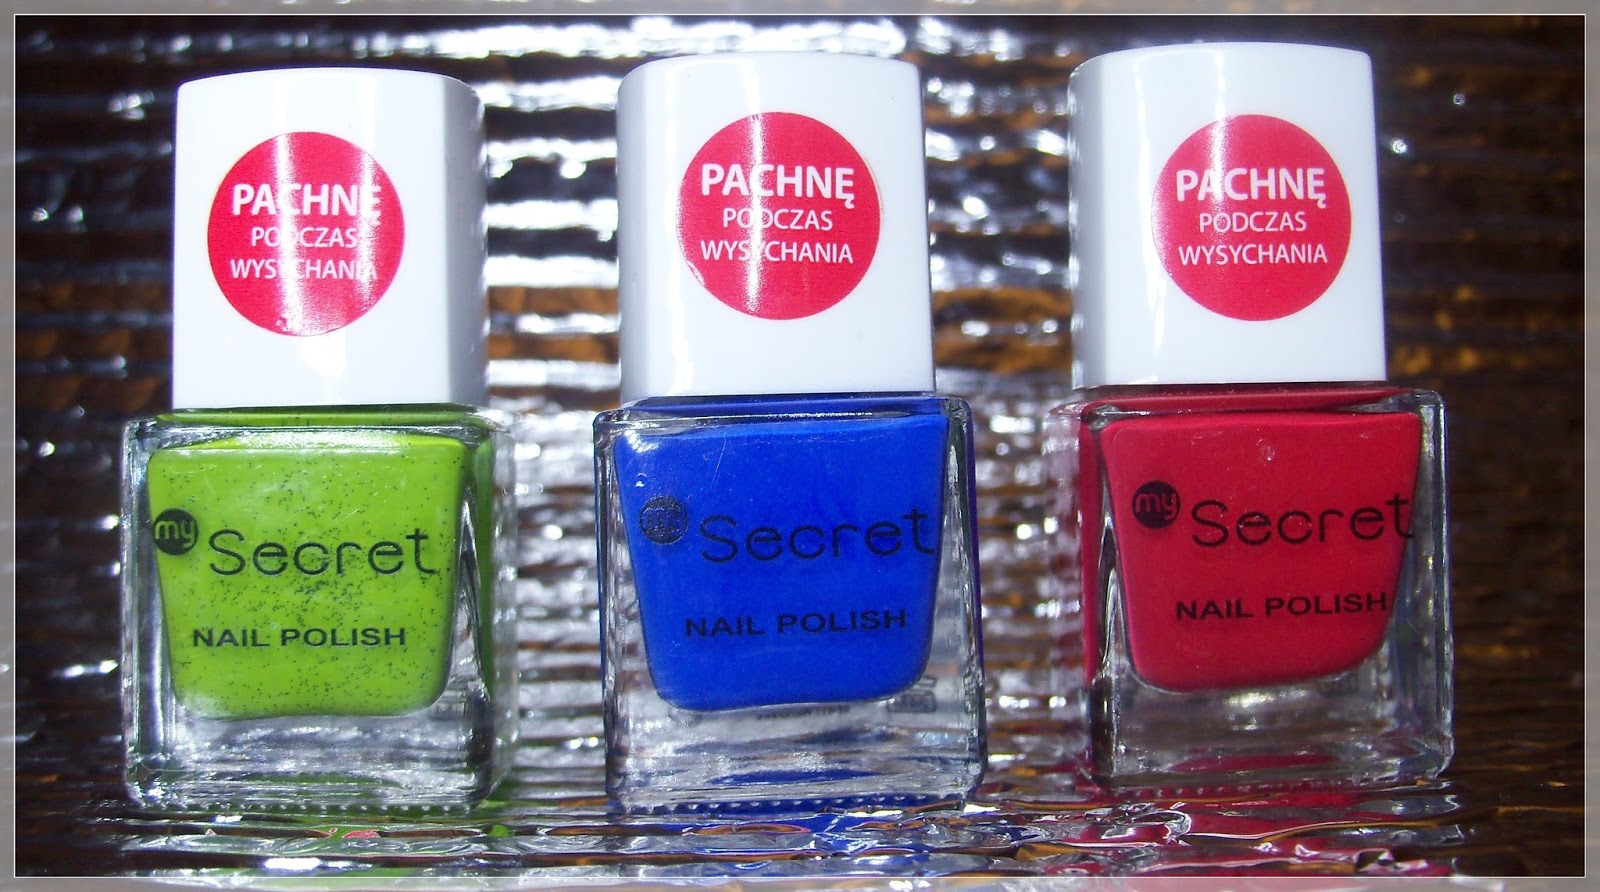 MY SECRET NAIL POLISH